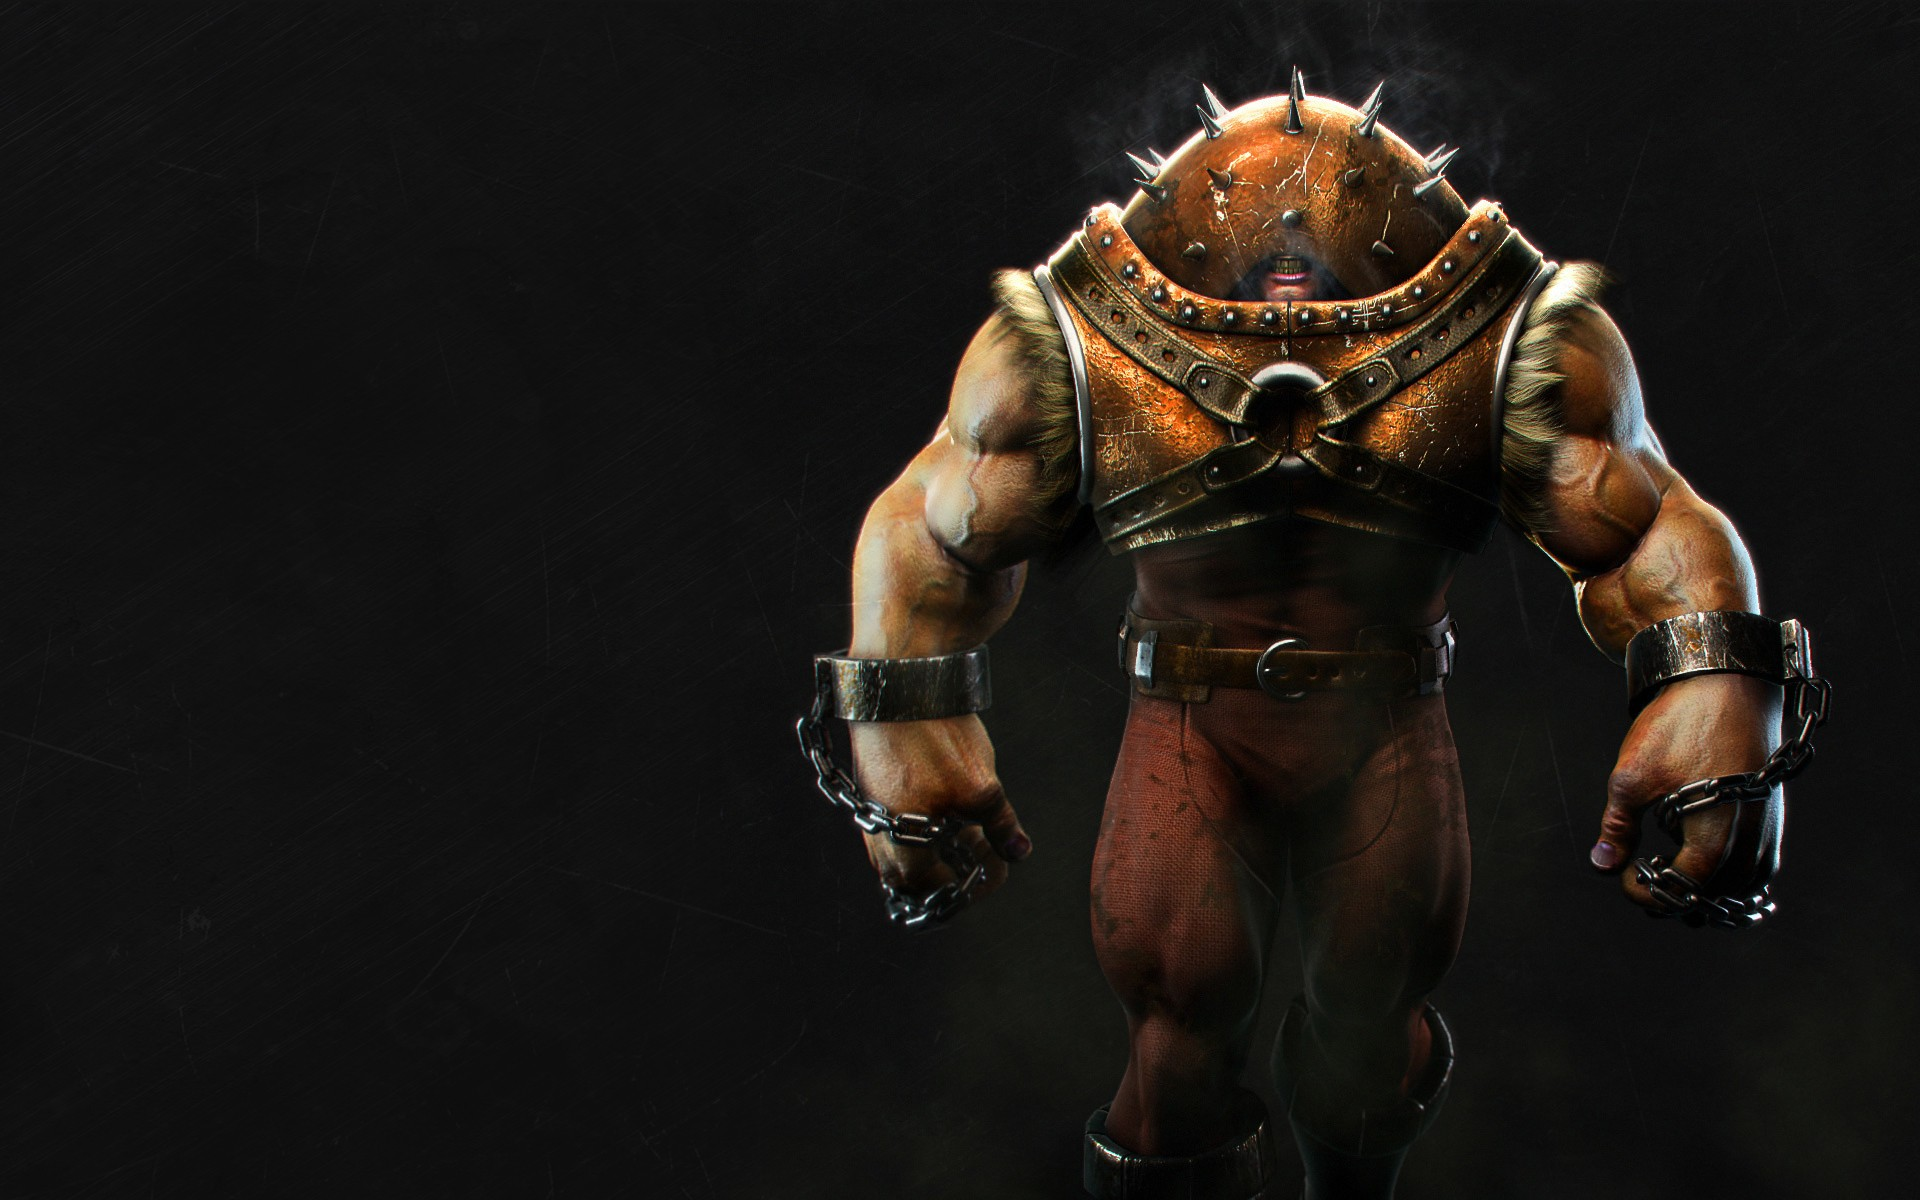 The Juggernaut Wallpaper